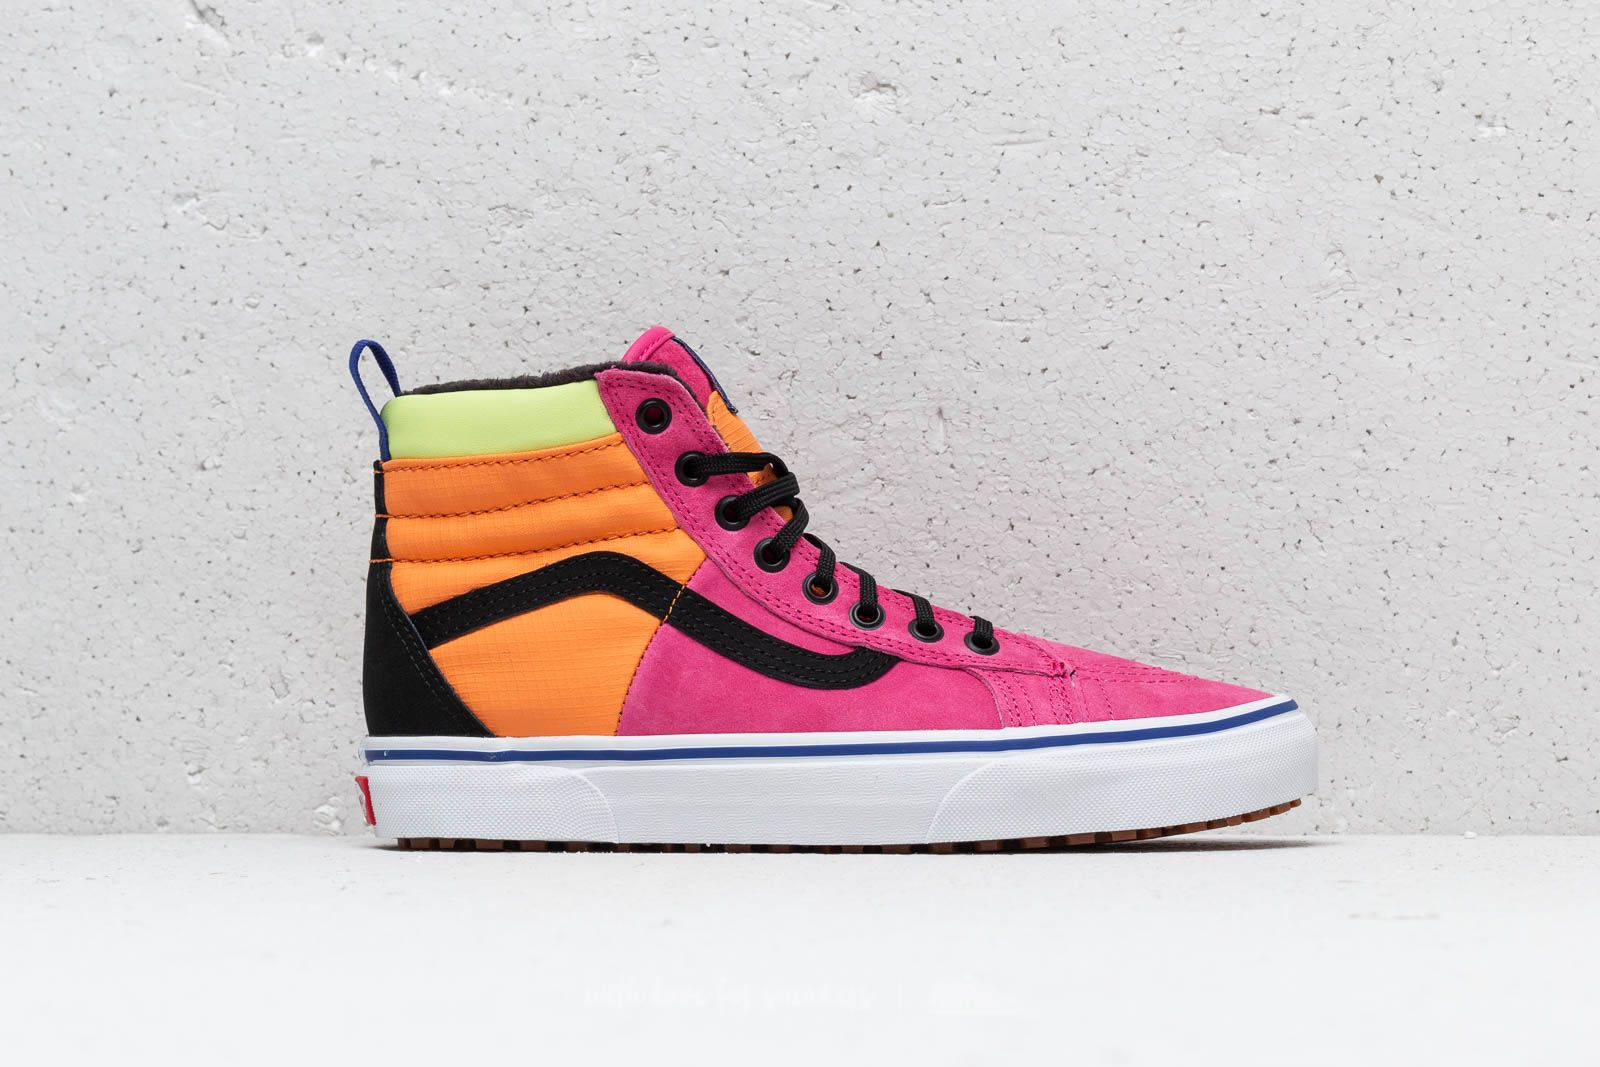 0bba48a5efd Vans Sk8-Hi 46 Mte DX Pink Yarrow  Tangeri at a great price 91